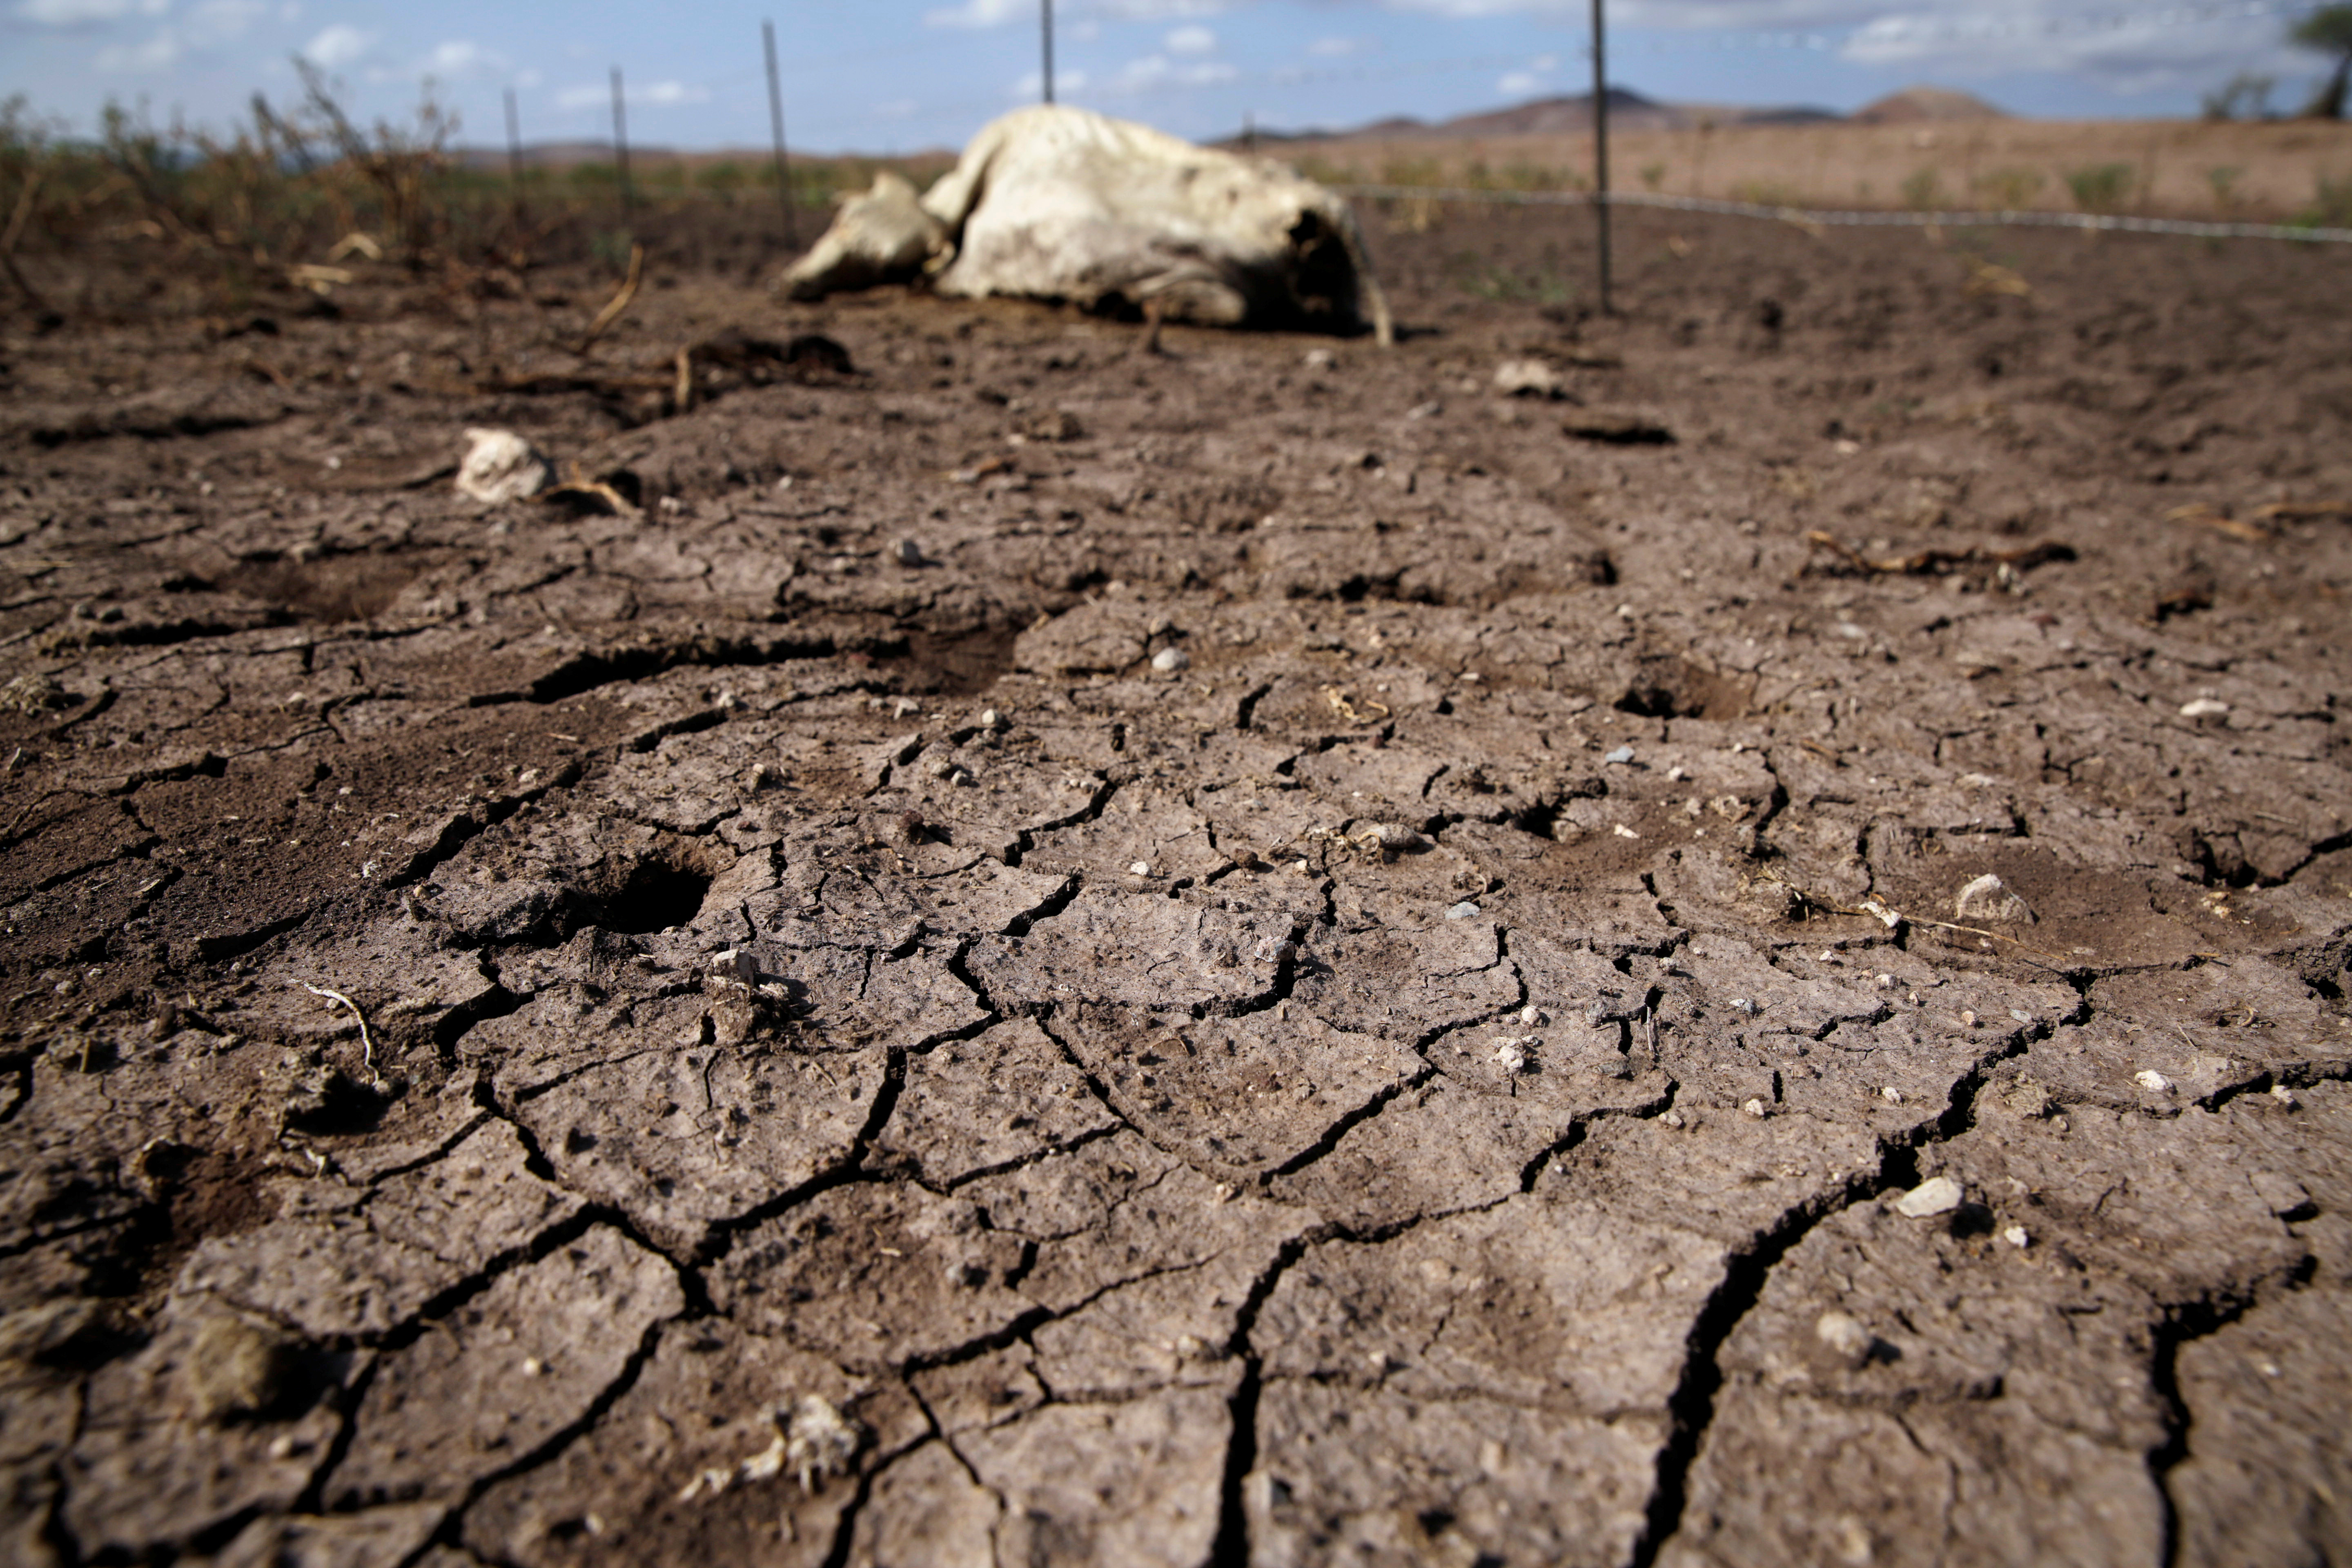 The carcass of a cow is seen on the dried ground of the Santa Barbara ranch in a drought-stricken area near Camargo, in Chihuahua state, Mexico September 9, 2020. REUTERS/Jose Luis Gonzalez - RC2TVI95PB7Y